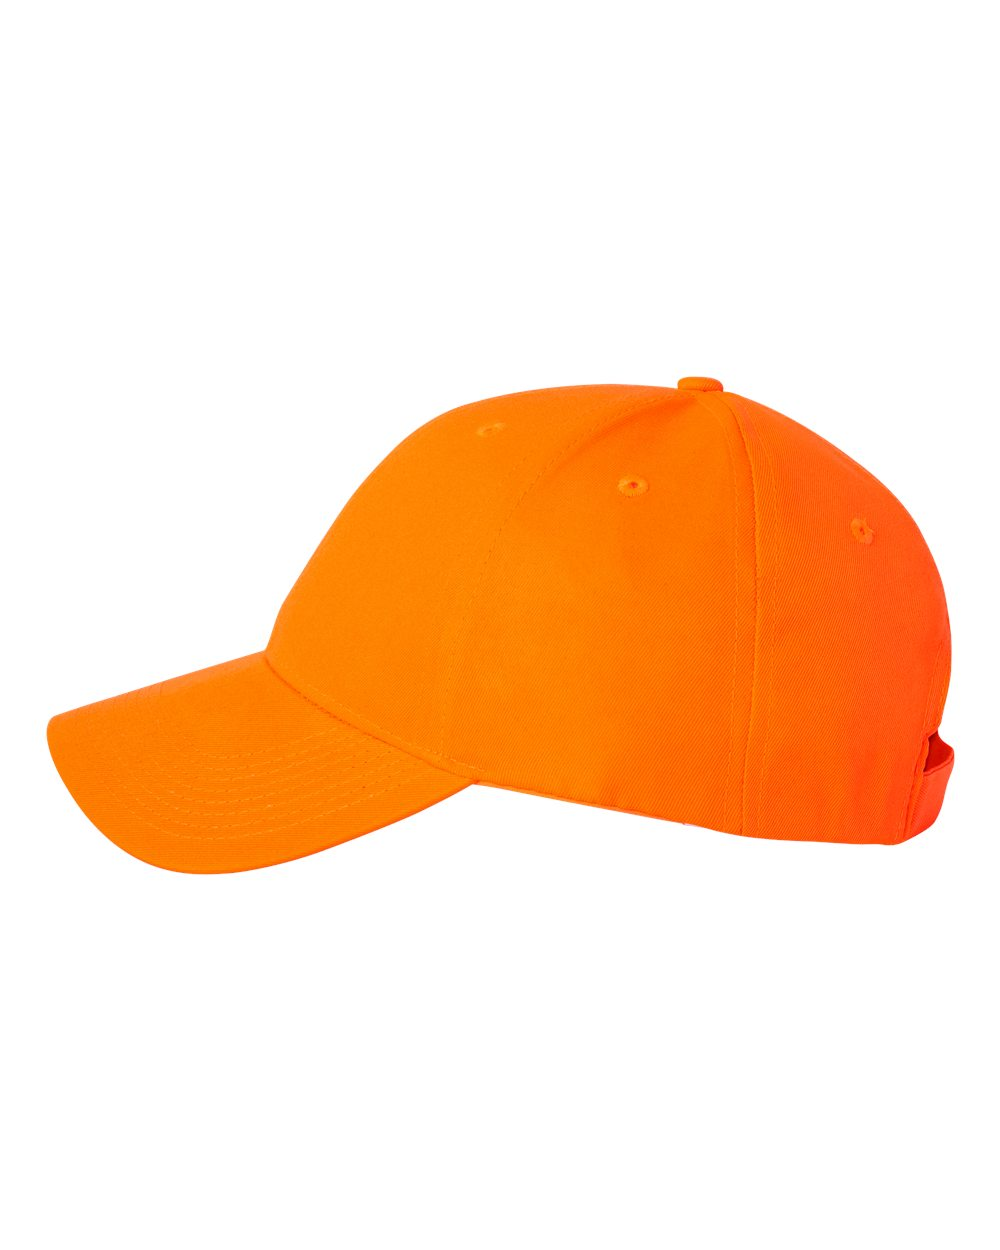 click to view Blaze Orange